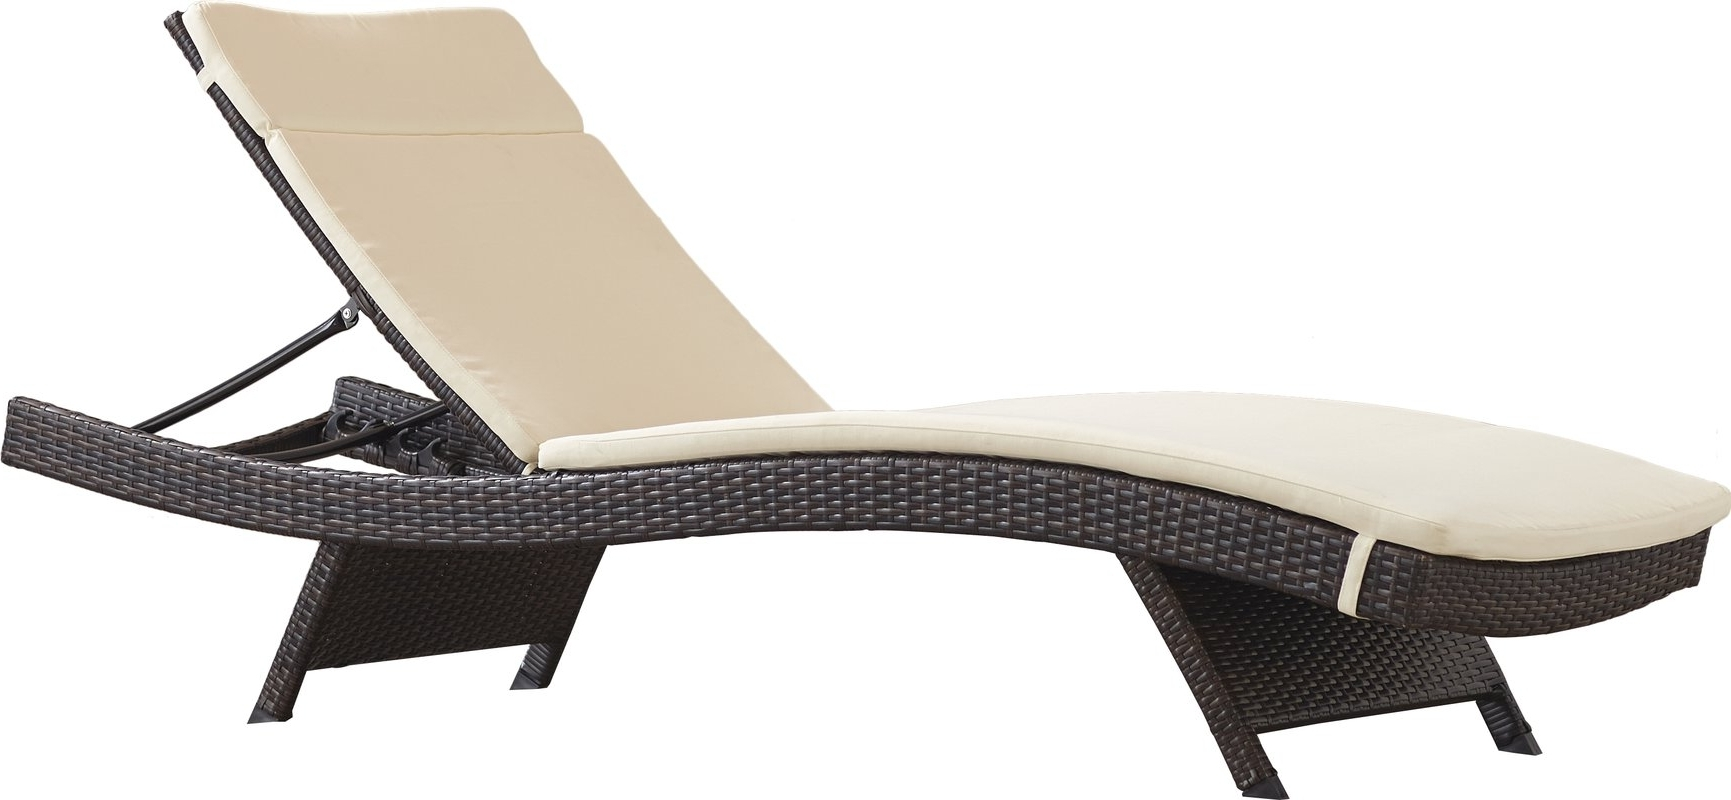 Most Up To Date Outdoor Wicker Chaise Lounges Regarding Brayden Studio Garry Wicker Adjustable Chaise Lounge With Cushion (View 9 of 15)